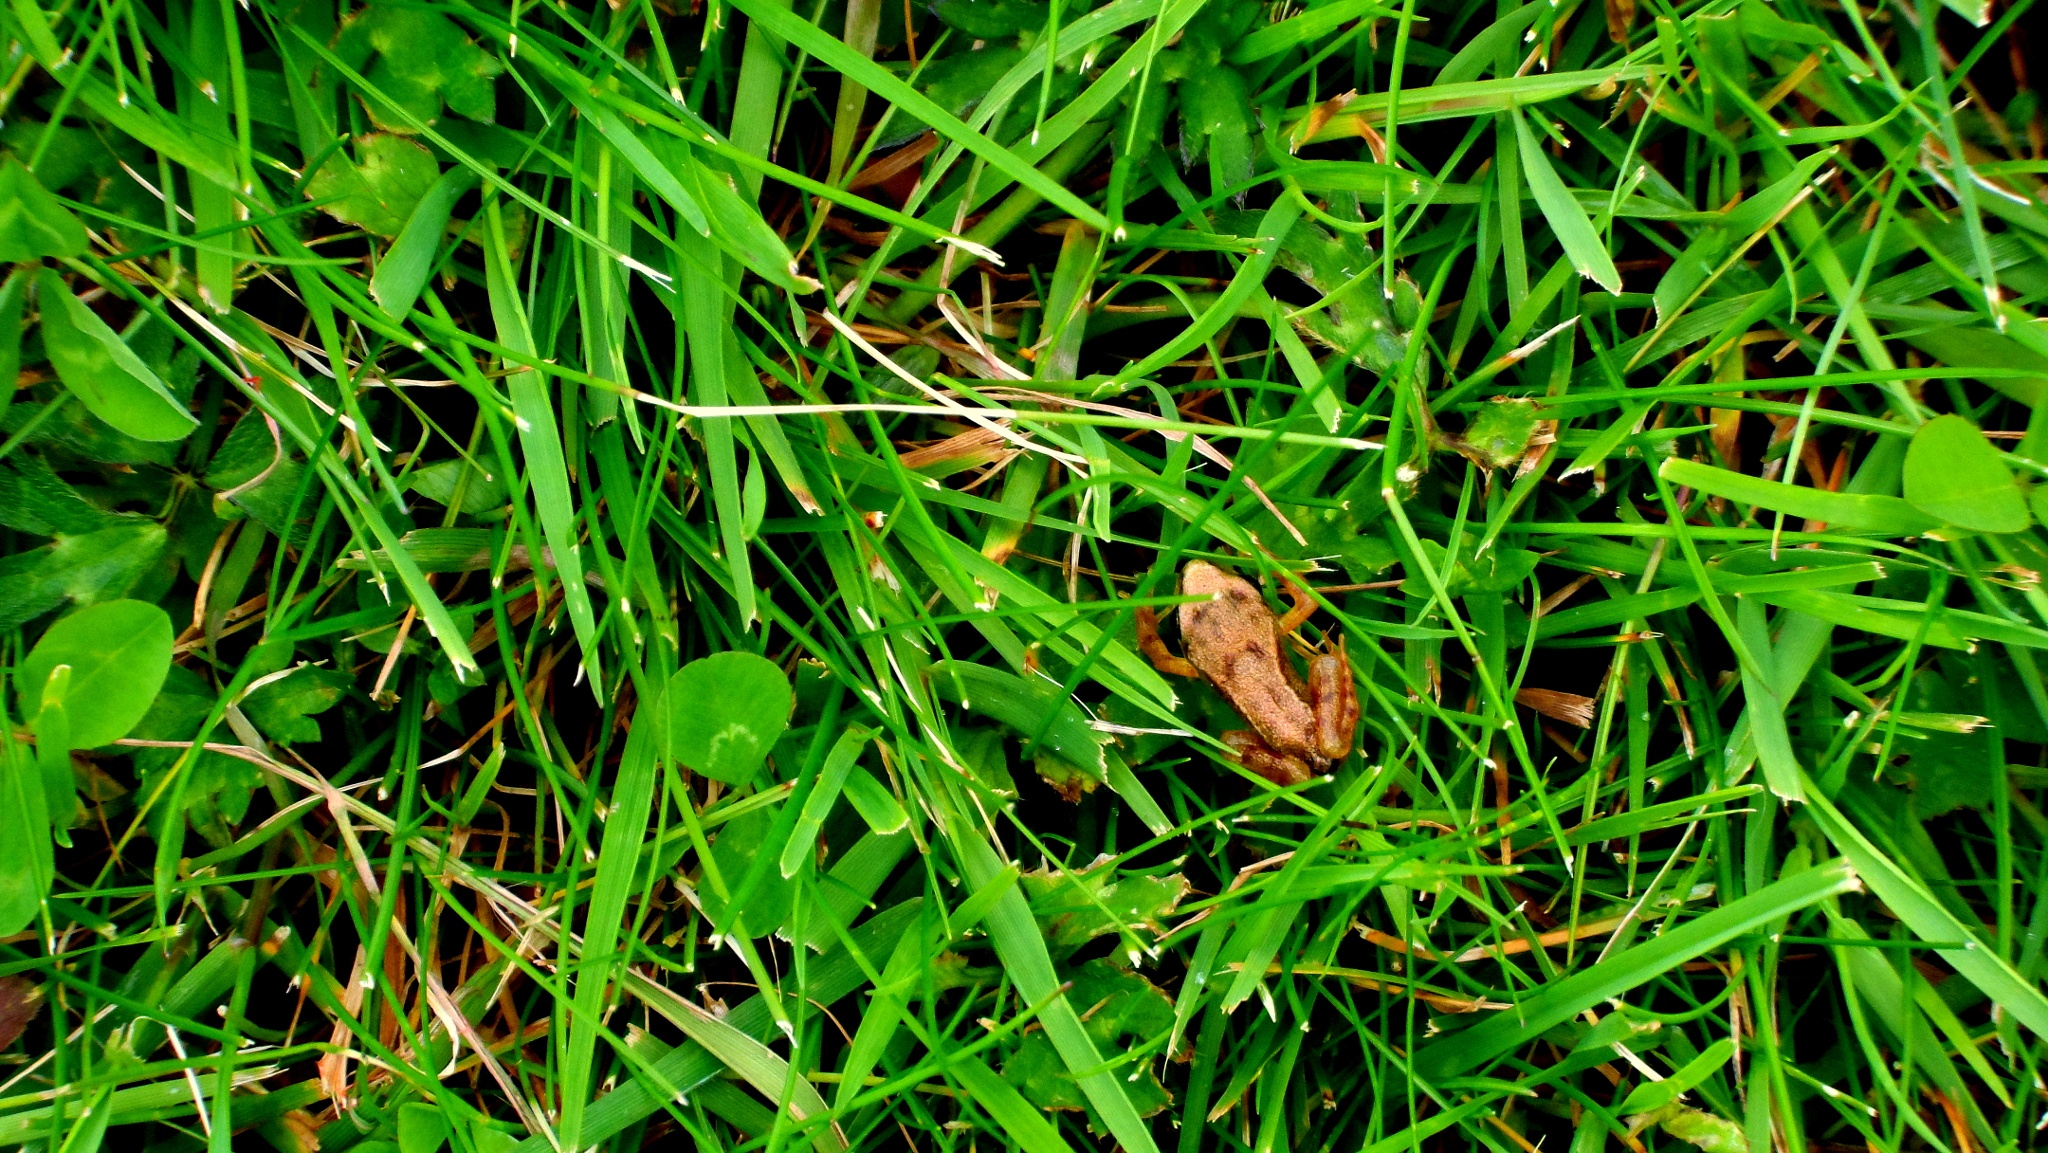 Baby frog seeking shelter in the grass by Tony Bent